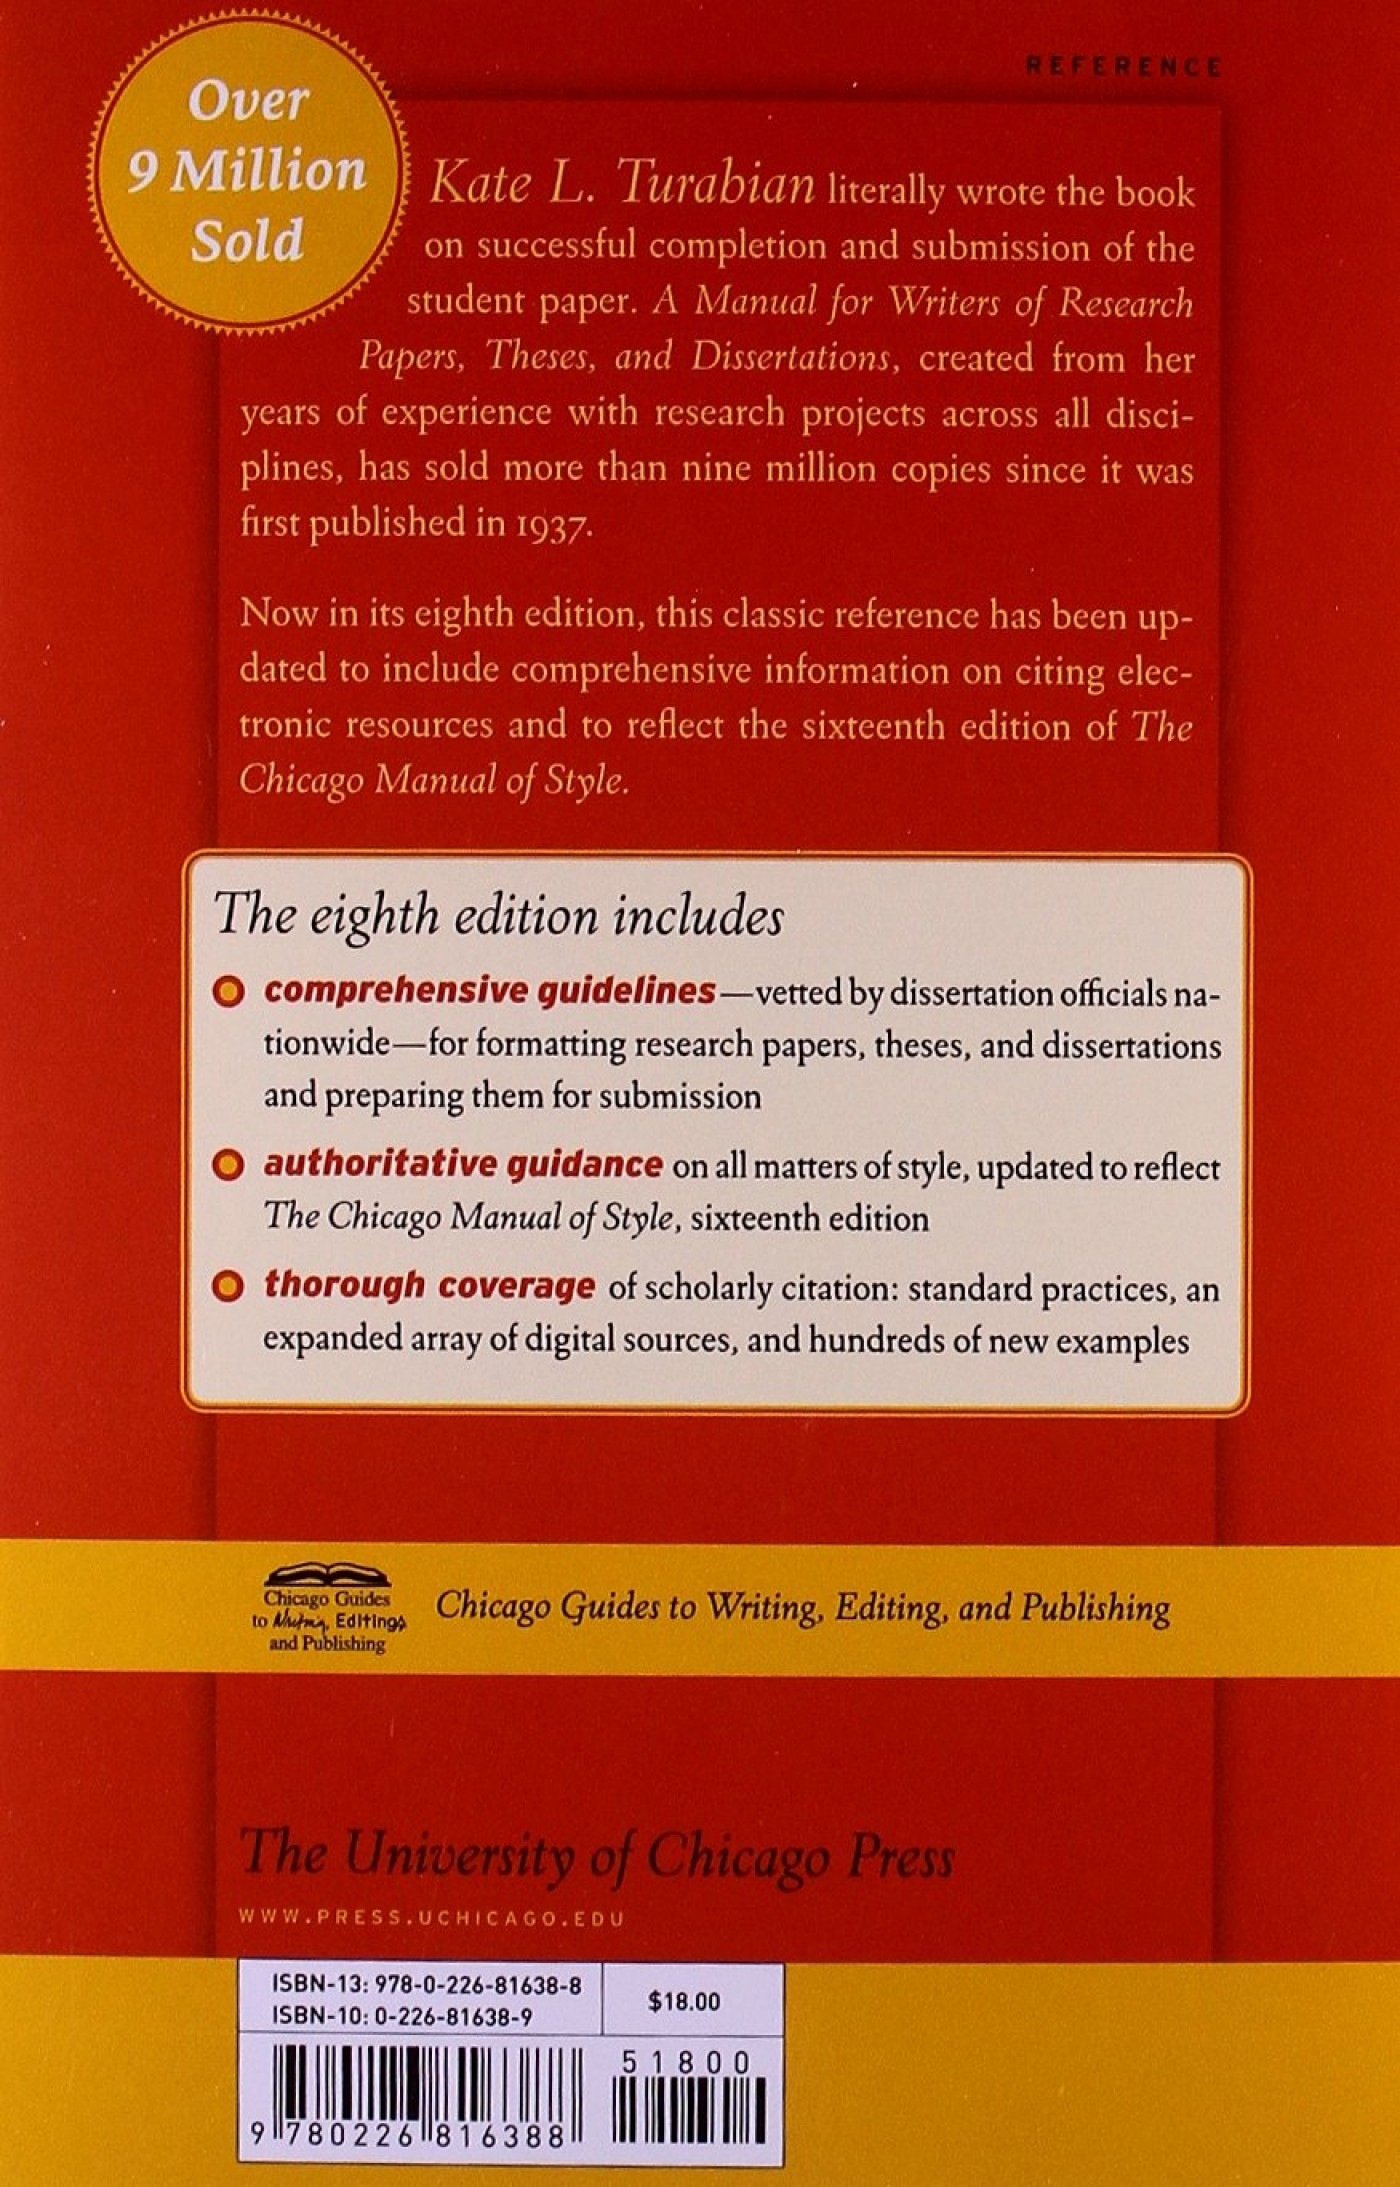 009 Research Paper Manual For Writers Of Papers Theses And Dissertations Turabian Amazing A Pdf 1400